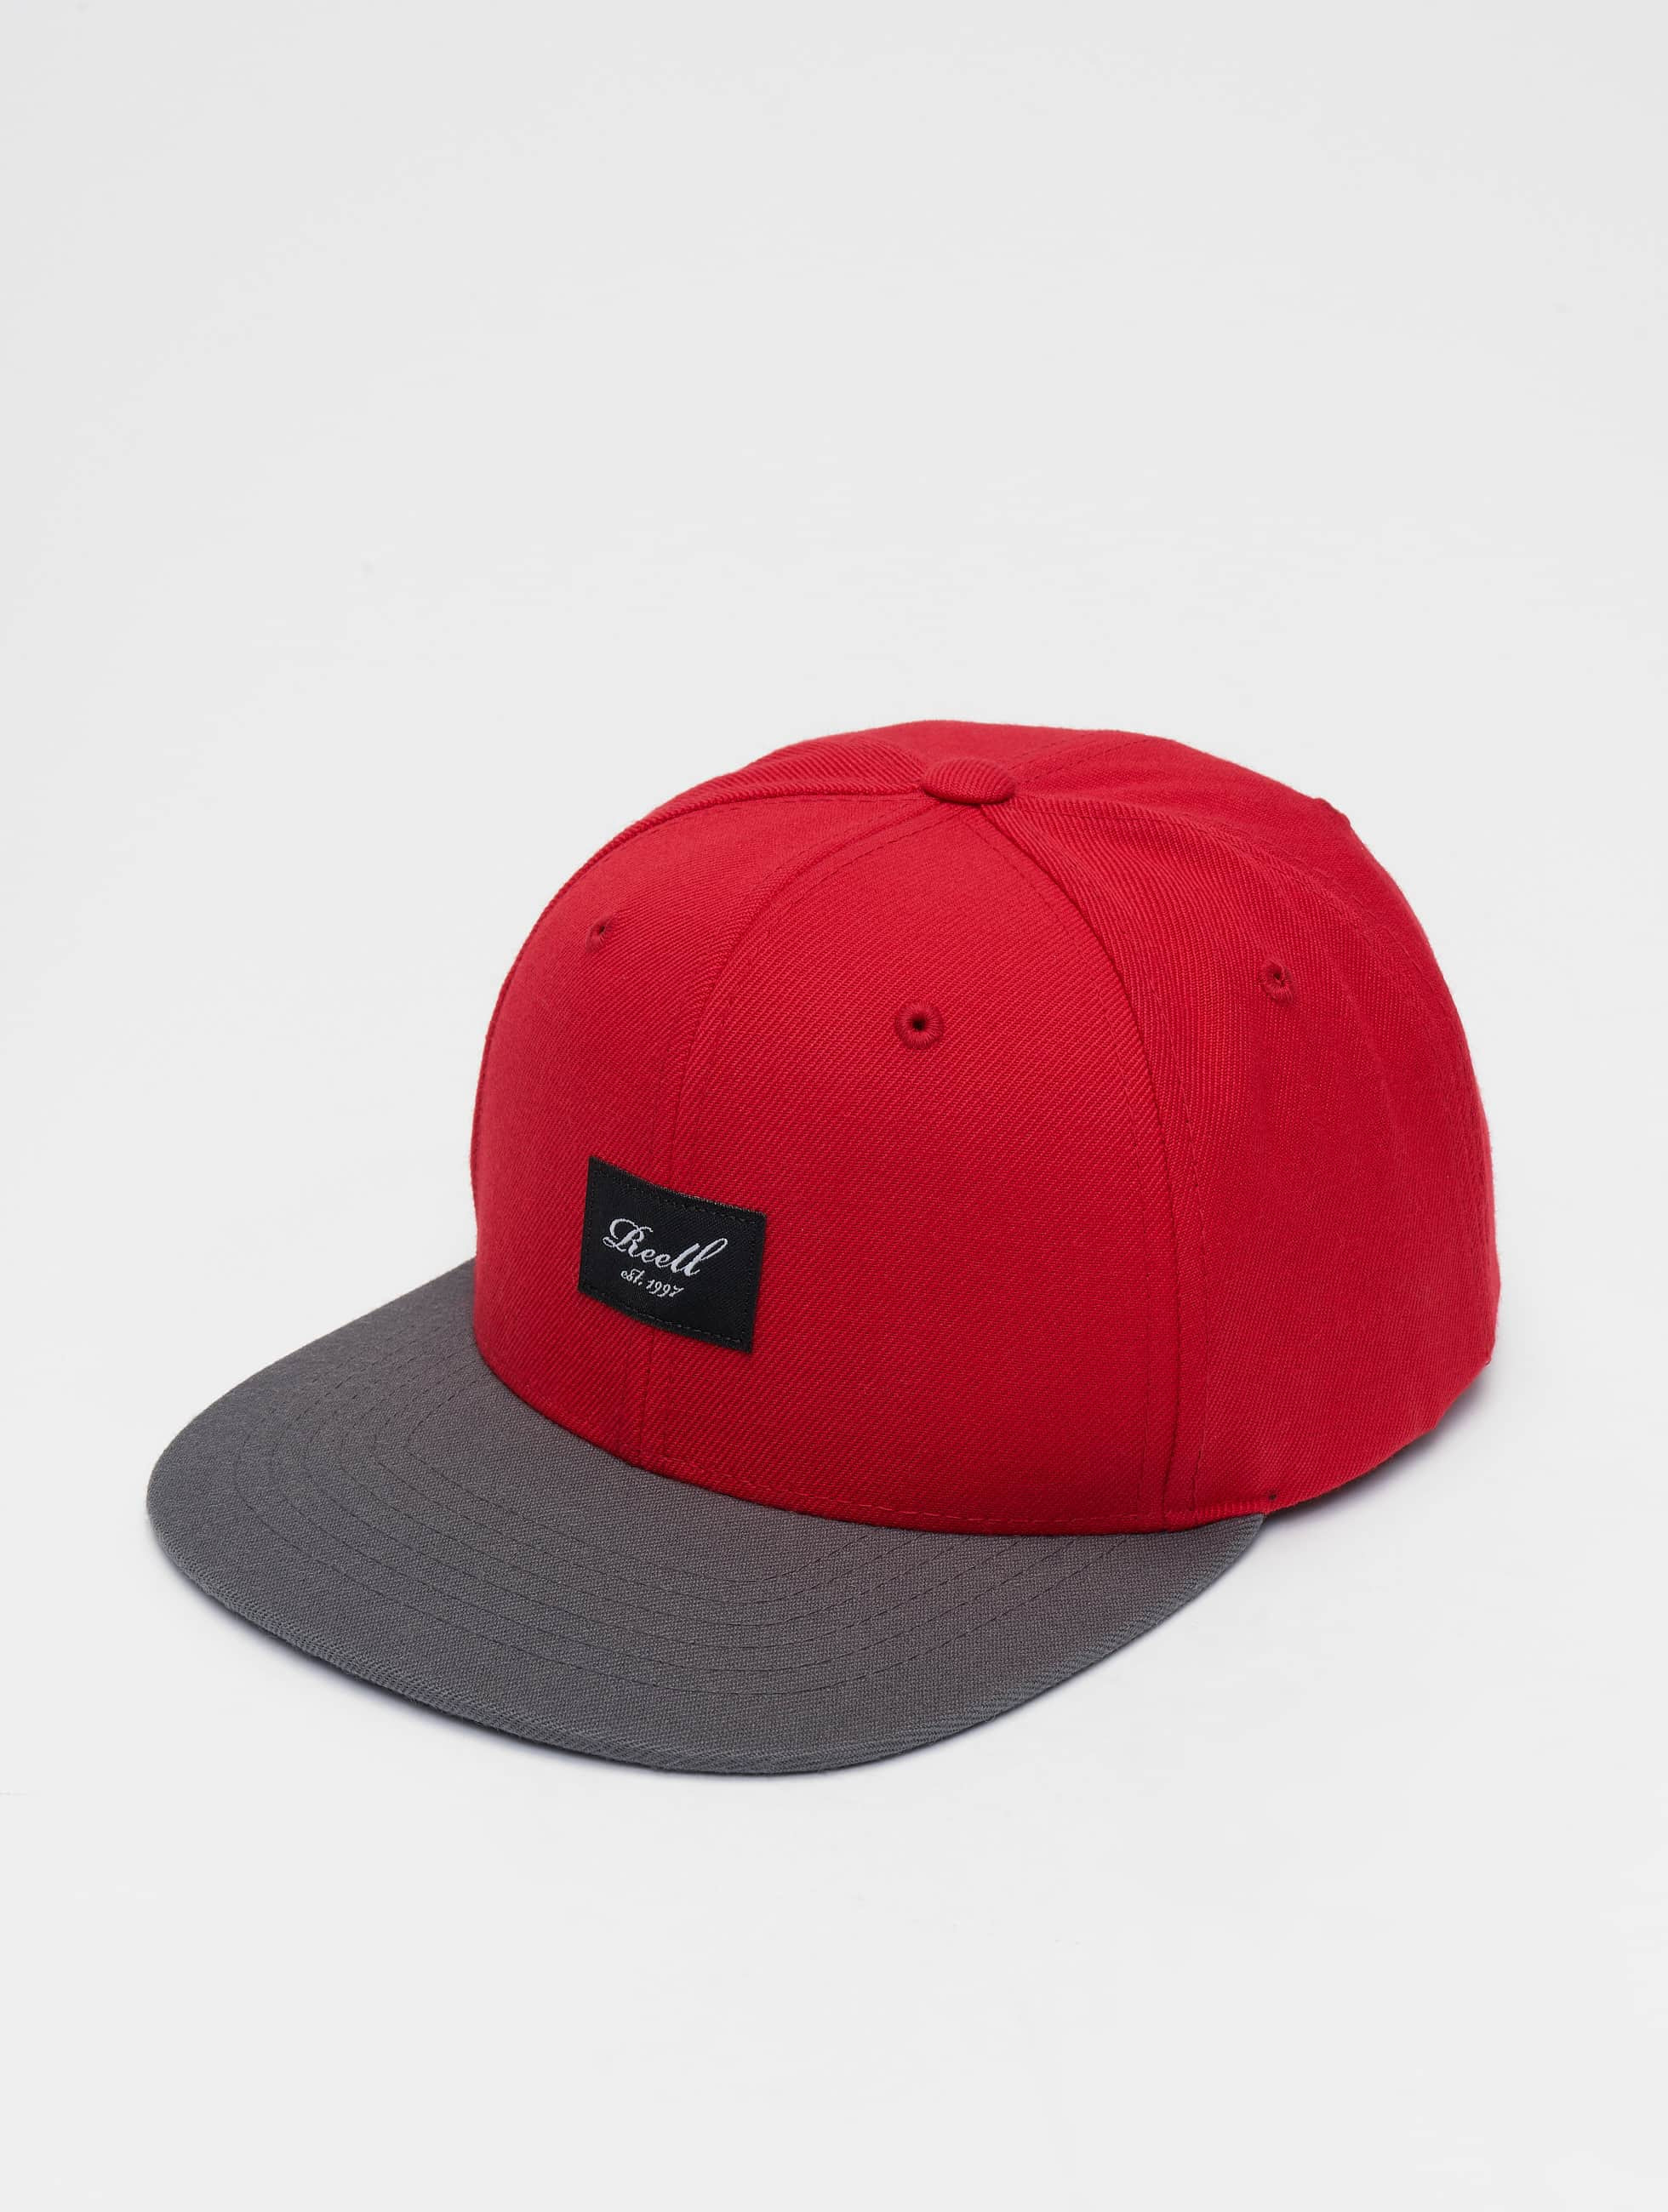 Reell Jeans | Pitchout 6 Panel rouge Homme,Femme Casquette Snapback & Strapback